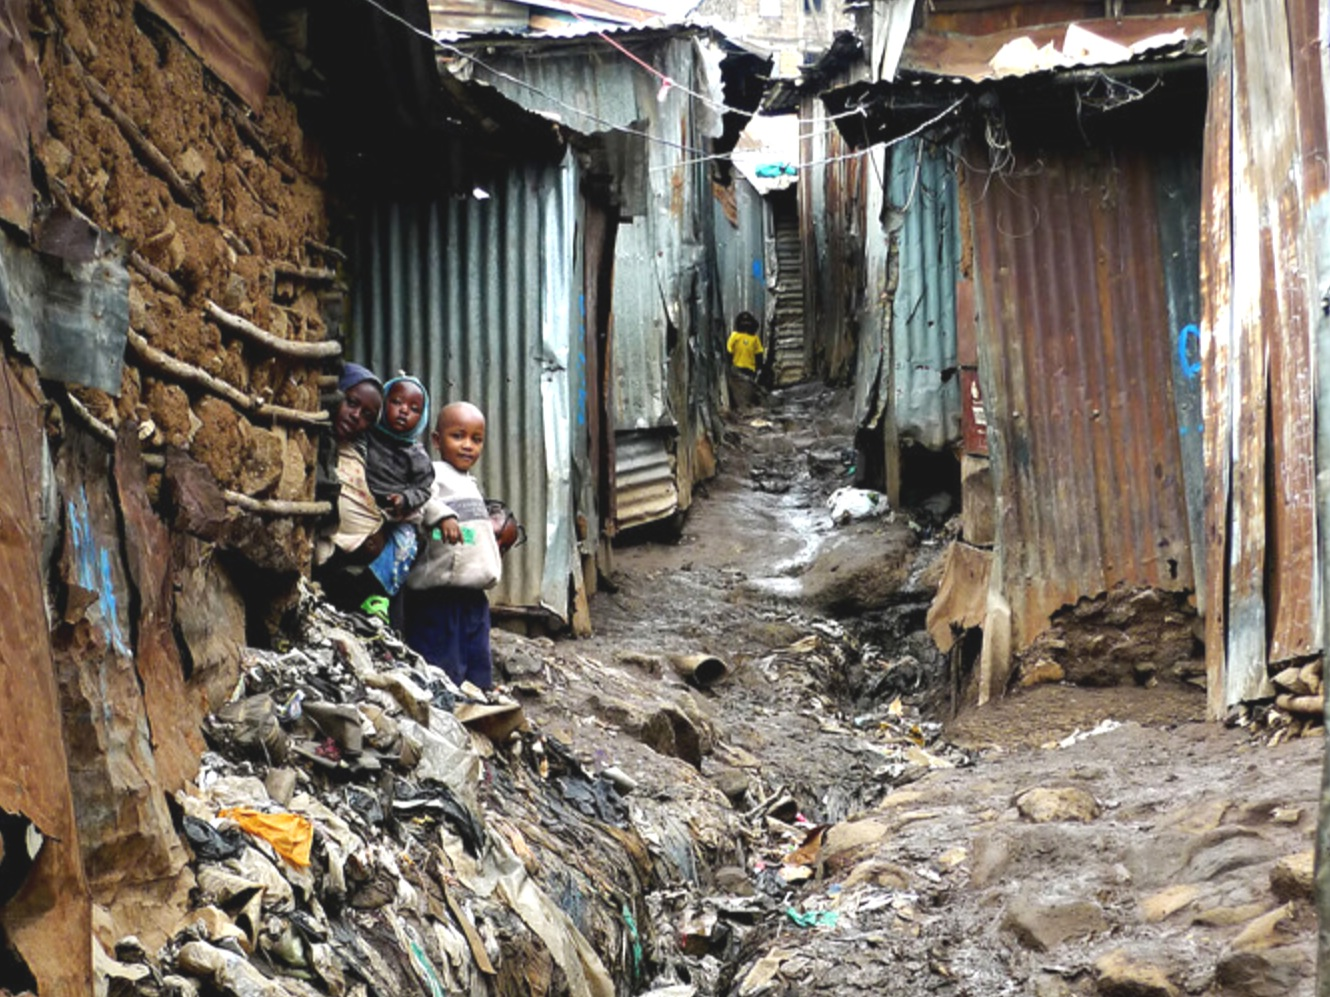 A passage in Mathare, Kenya's most overcrowded slum. Half a million people share barely 1 square kilometer in horrendous conditions. Life is set against a backdrop of poverty, anarchy, prostitution, lack of basic amenities, and a myriad of social complexities.